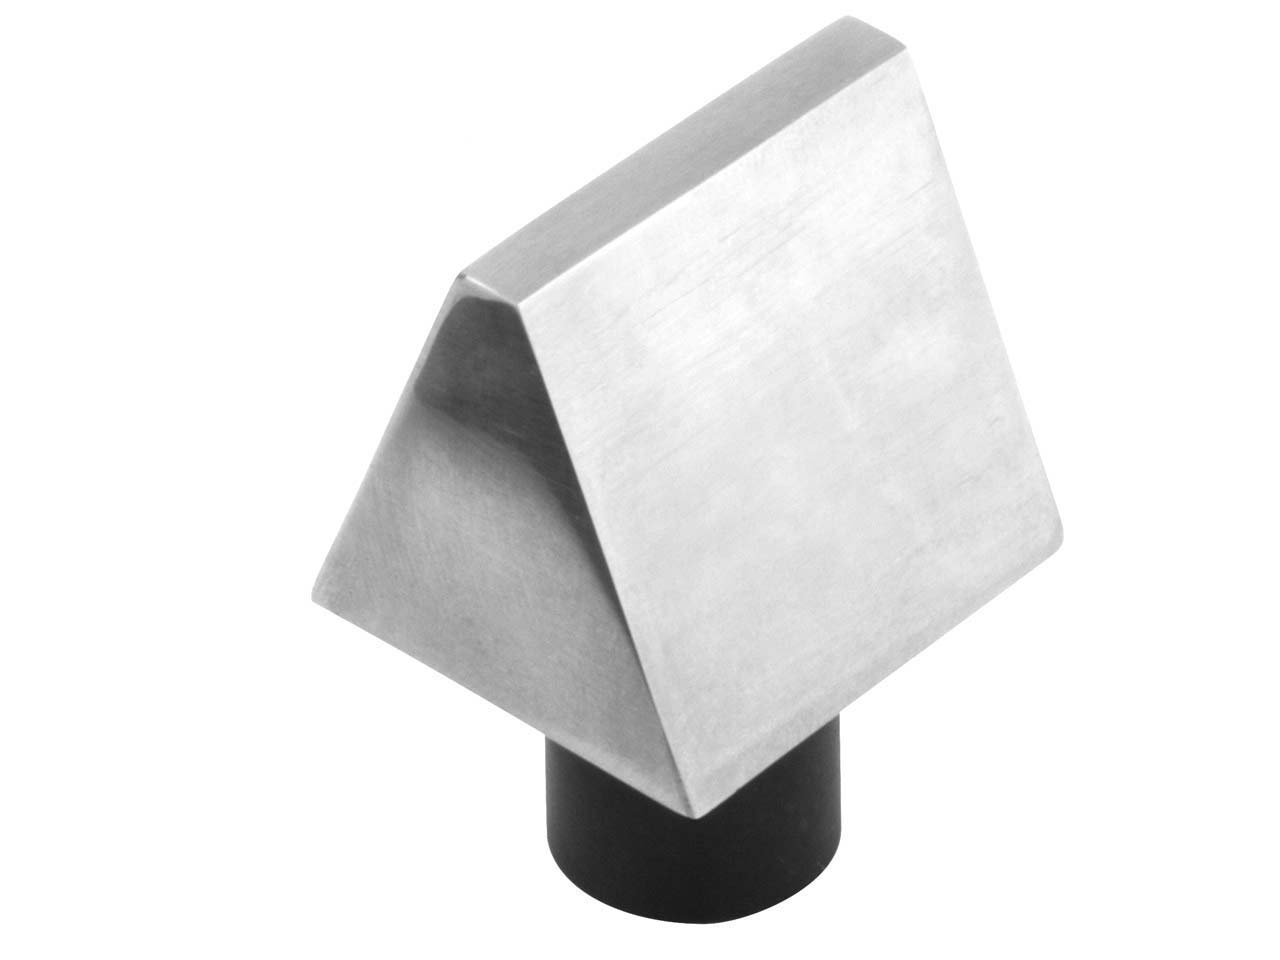 Durston Planishing Triangle Stake  60mm X 6mm X 40mm